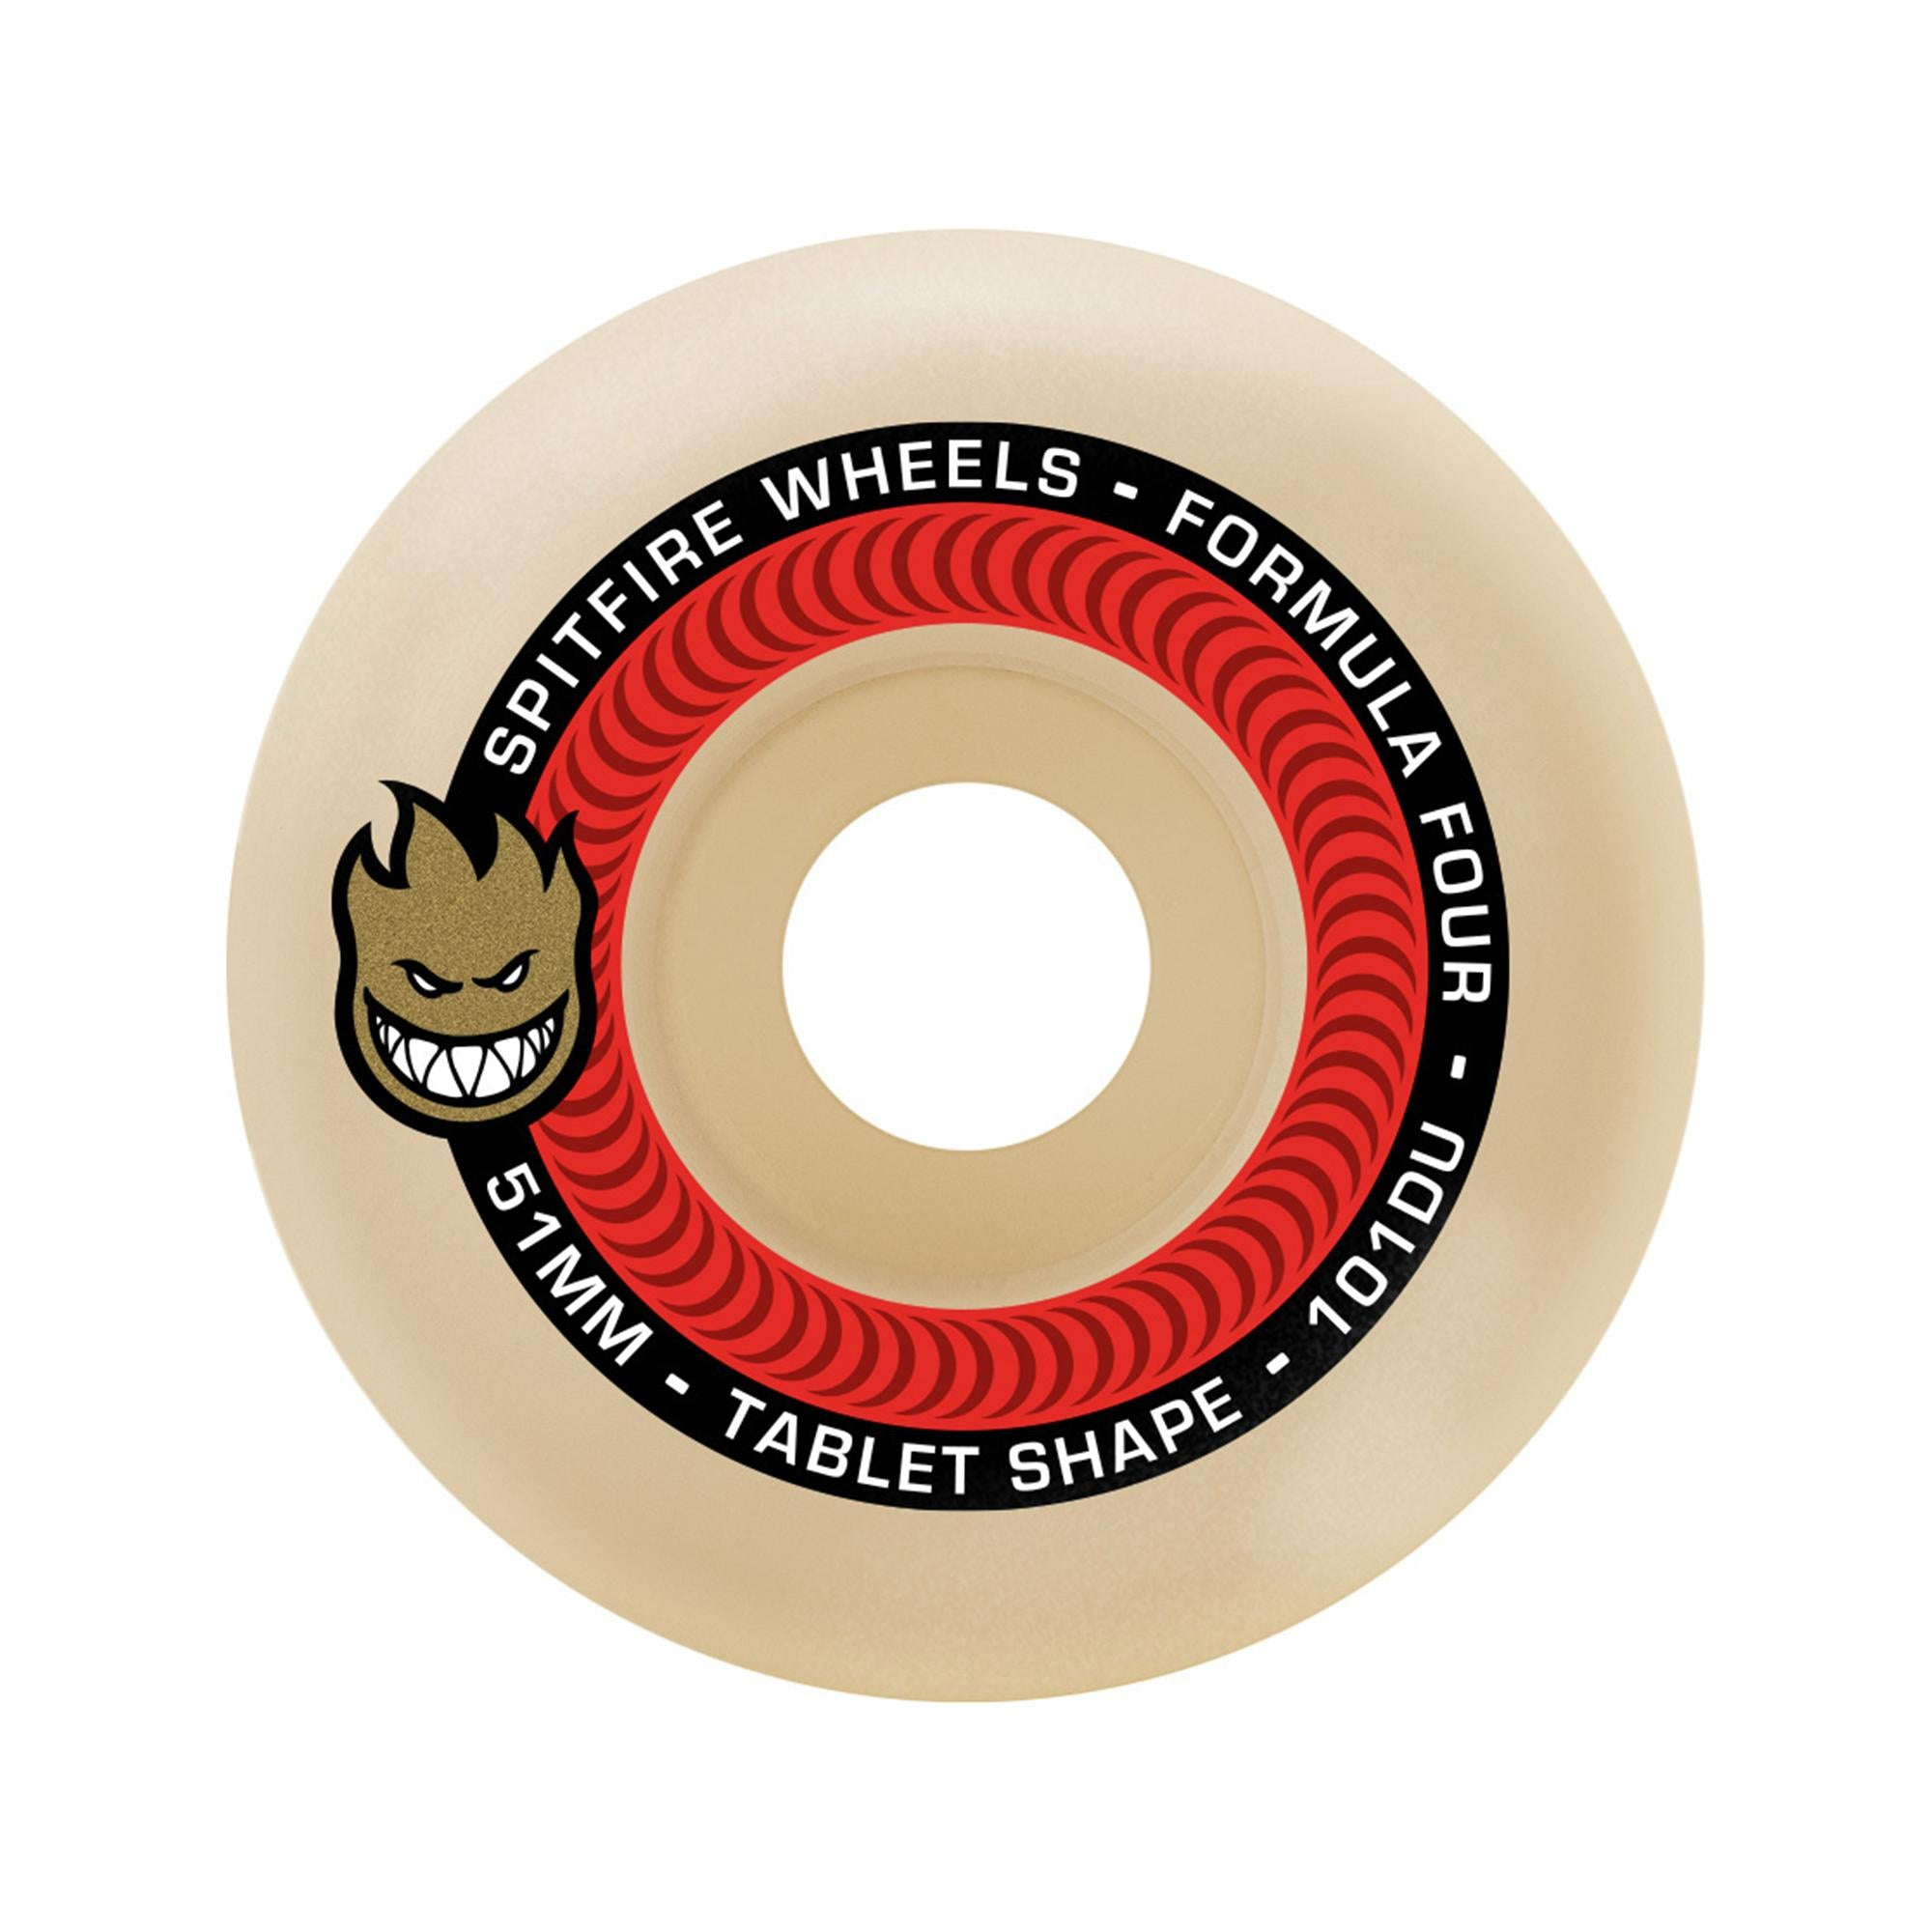 Spitfire Formula Four Tablet 101 Wheels Product Photo #1